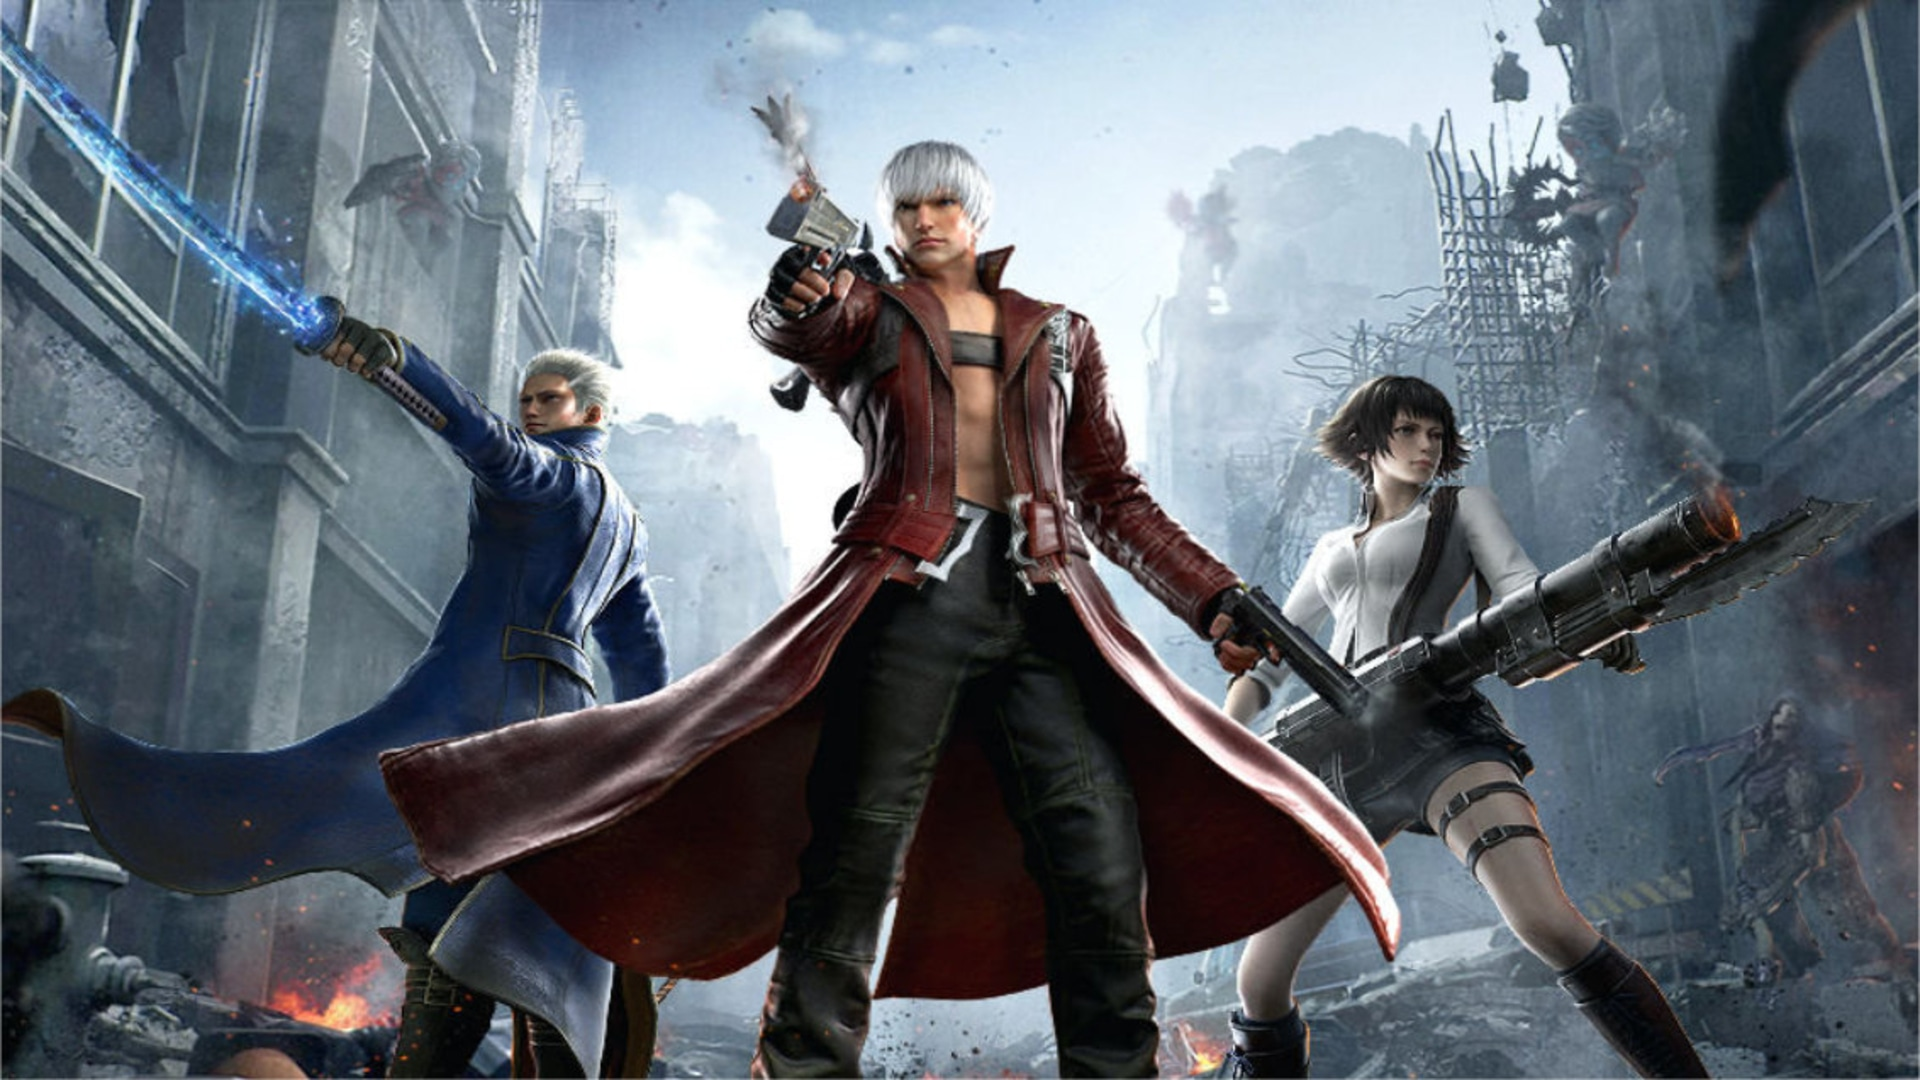 Devil May Cry 1762021 1